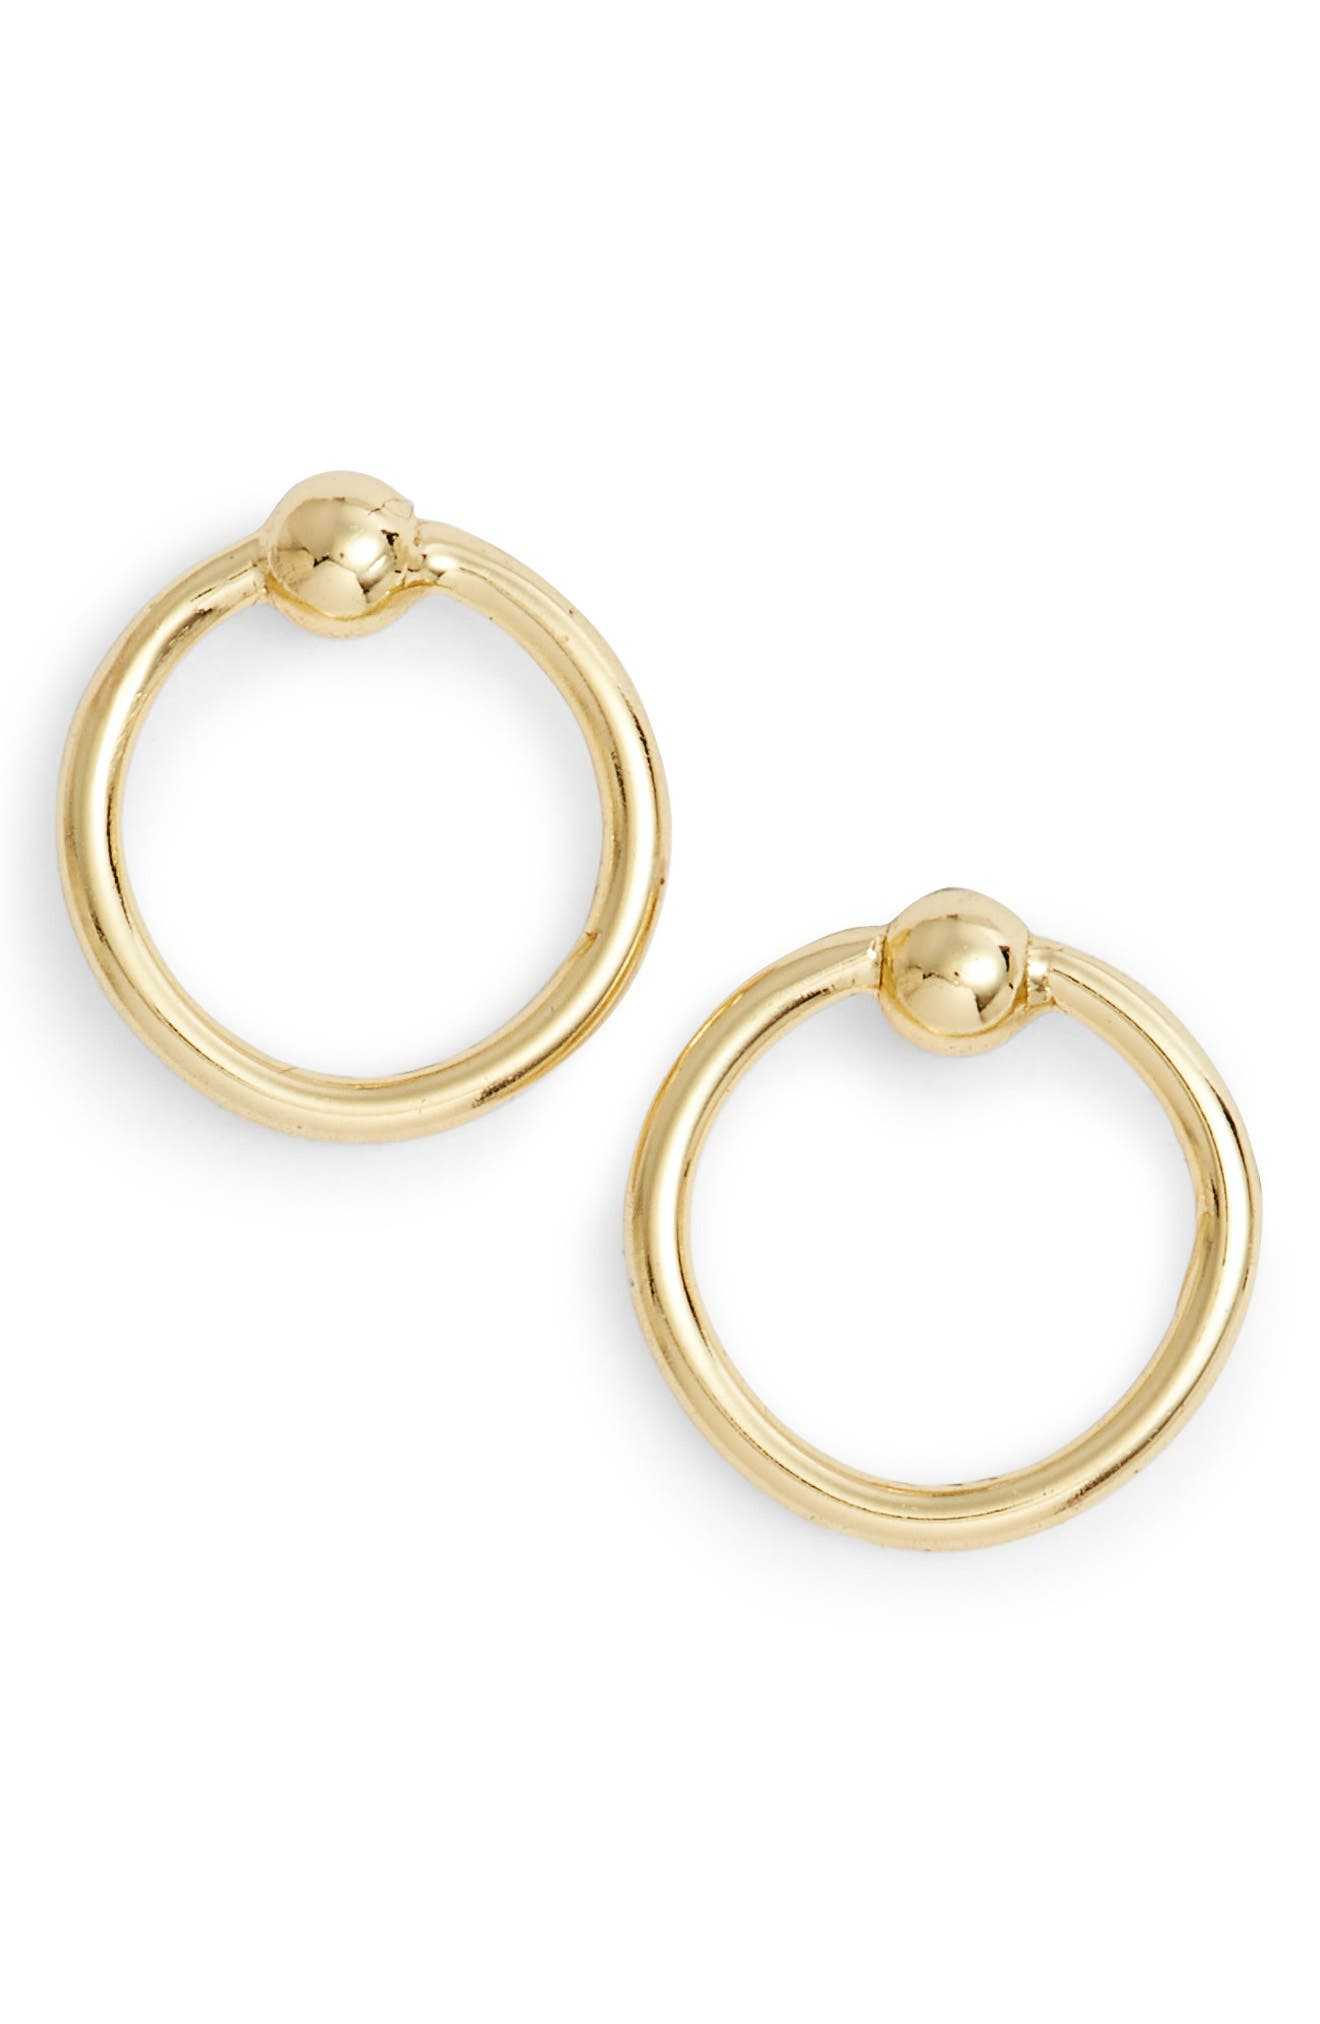 Stationed Open Ring Stud Earrings,                         Main,                         color, Gold